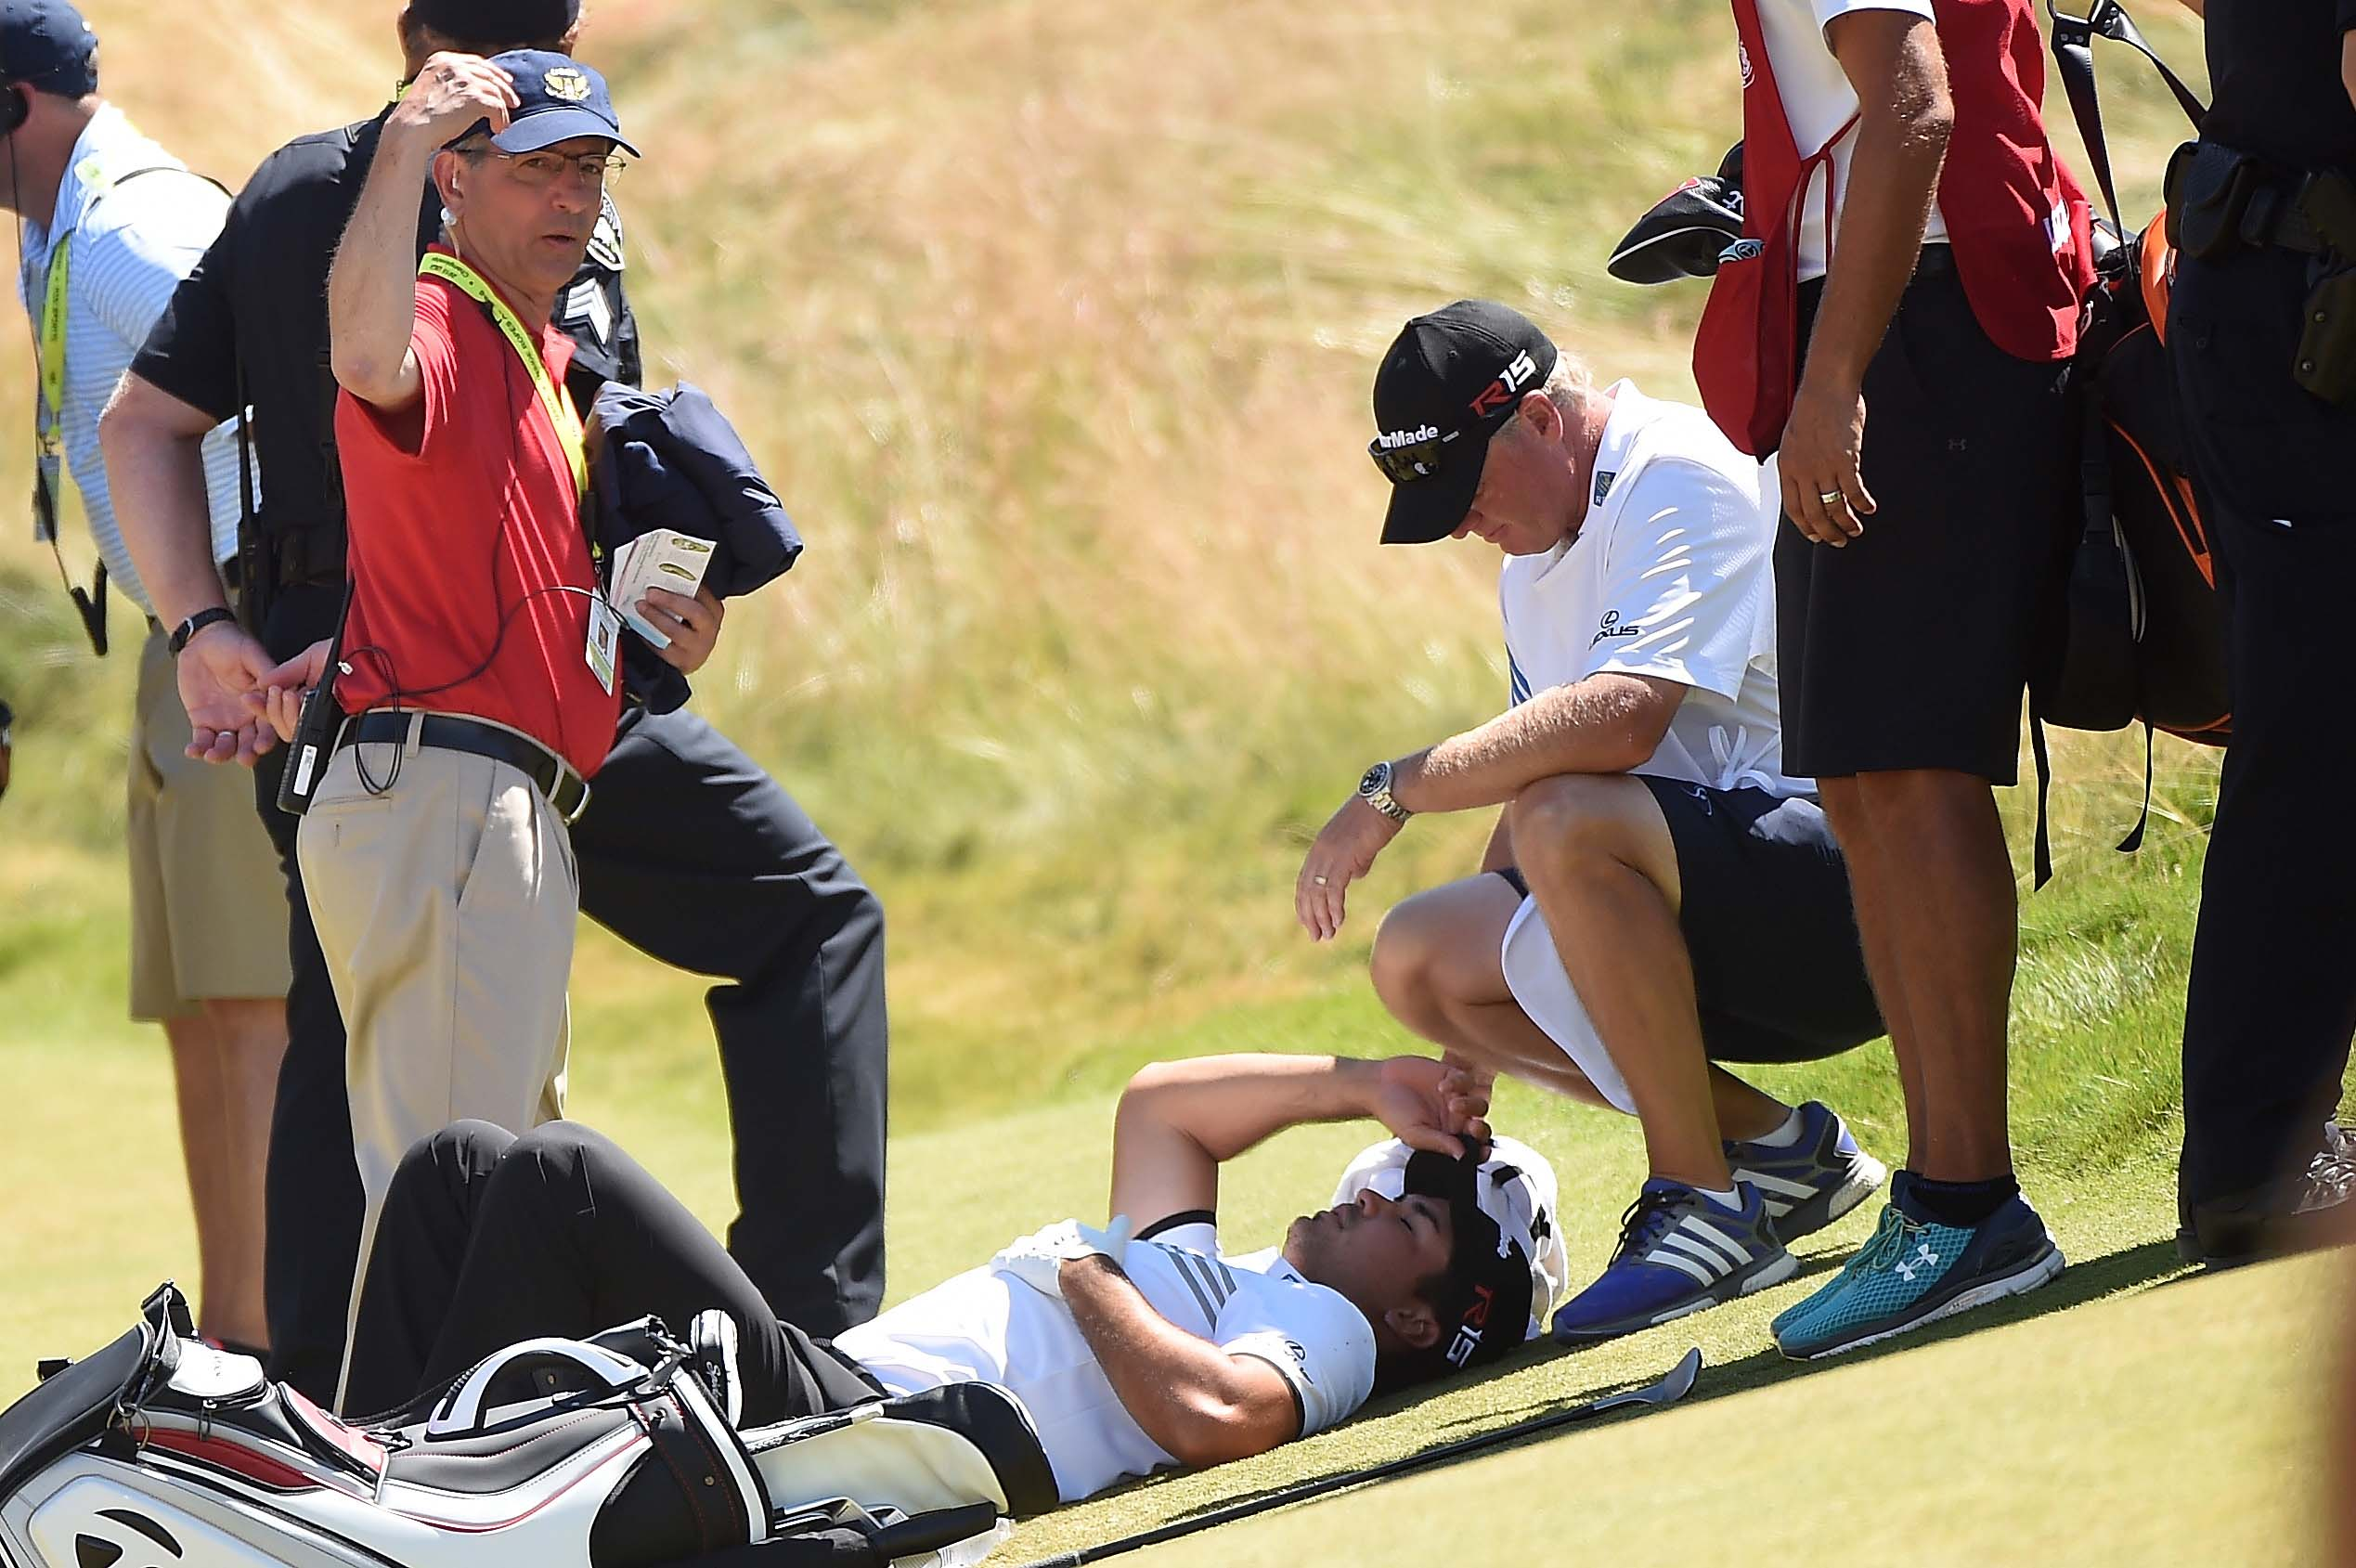 4. Day collapses at U.S. Open